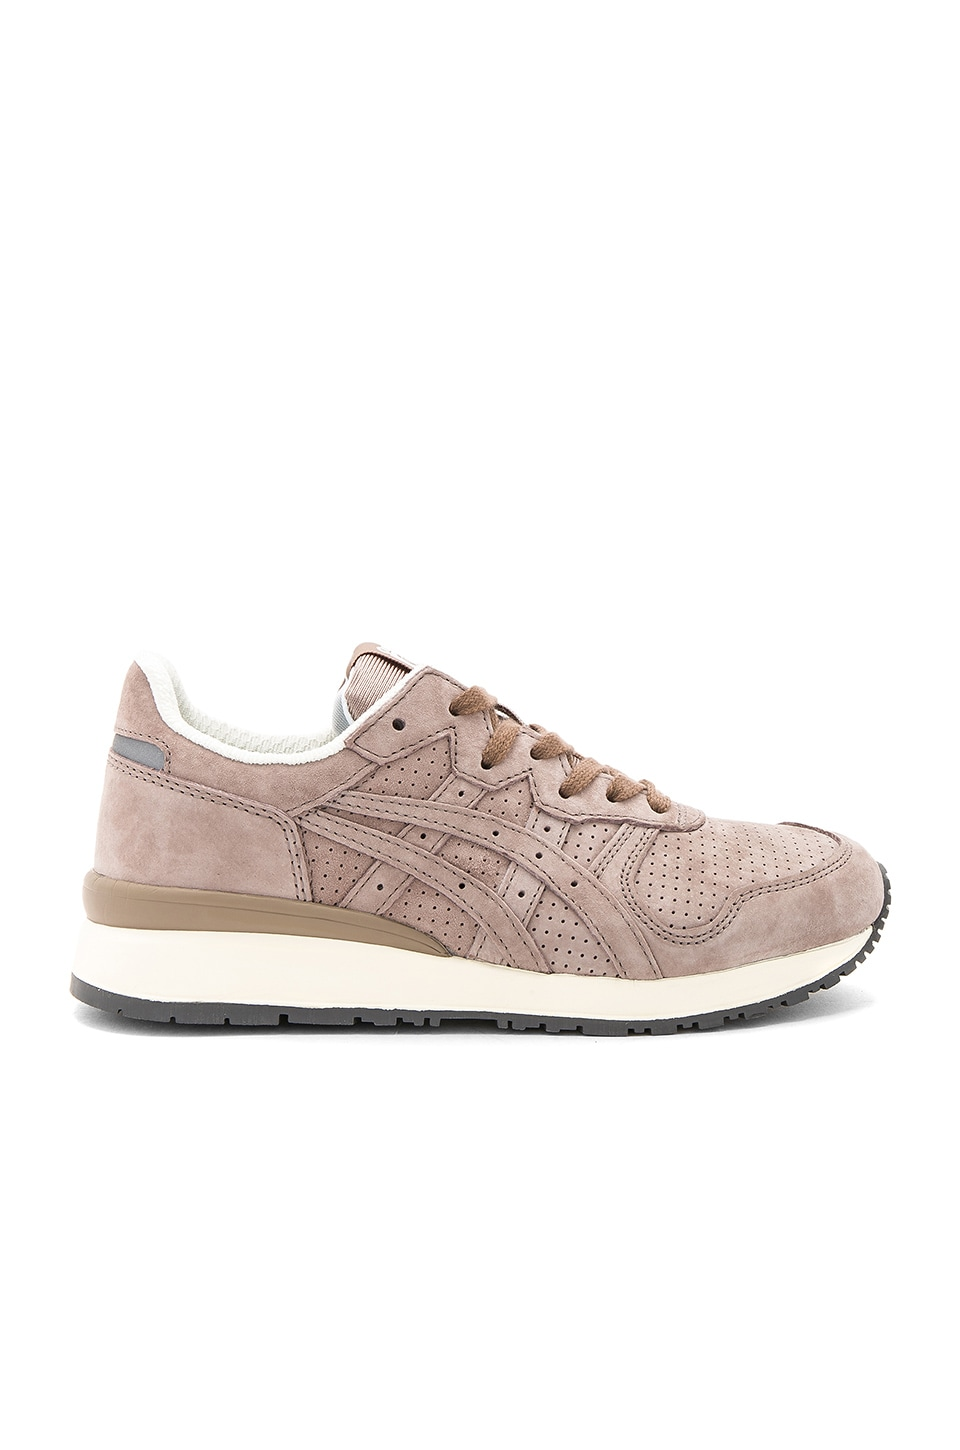 Onitsuka Tiger Tiger Ally Sneaker in Taupe Grey & Taupe Grey